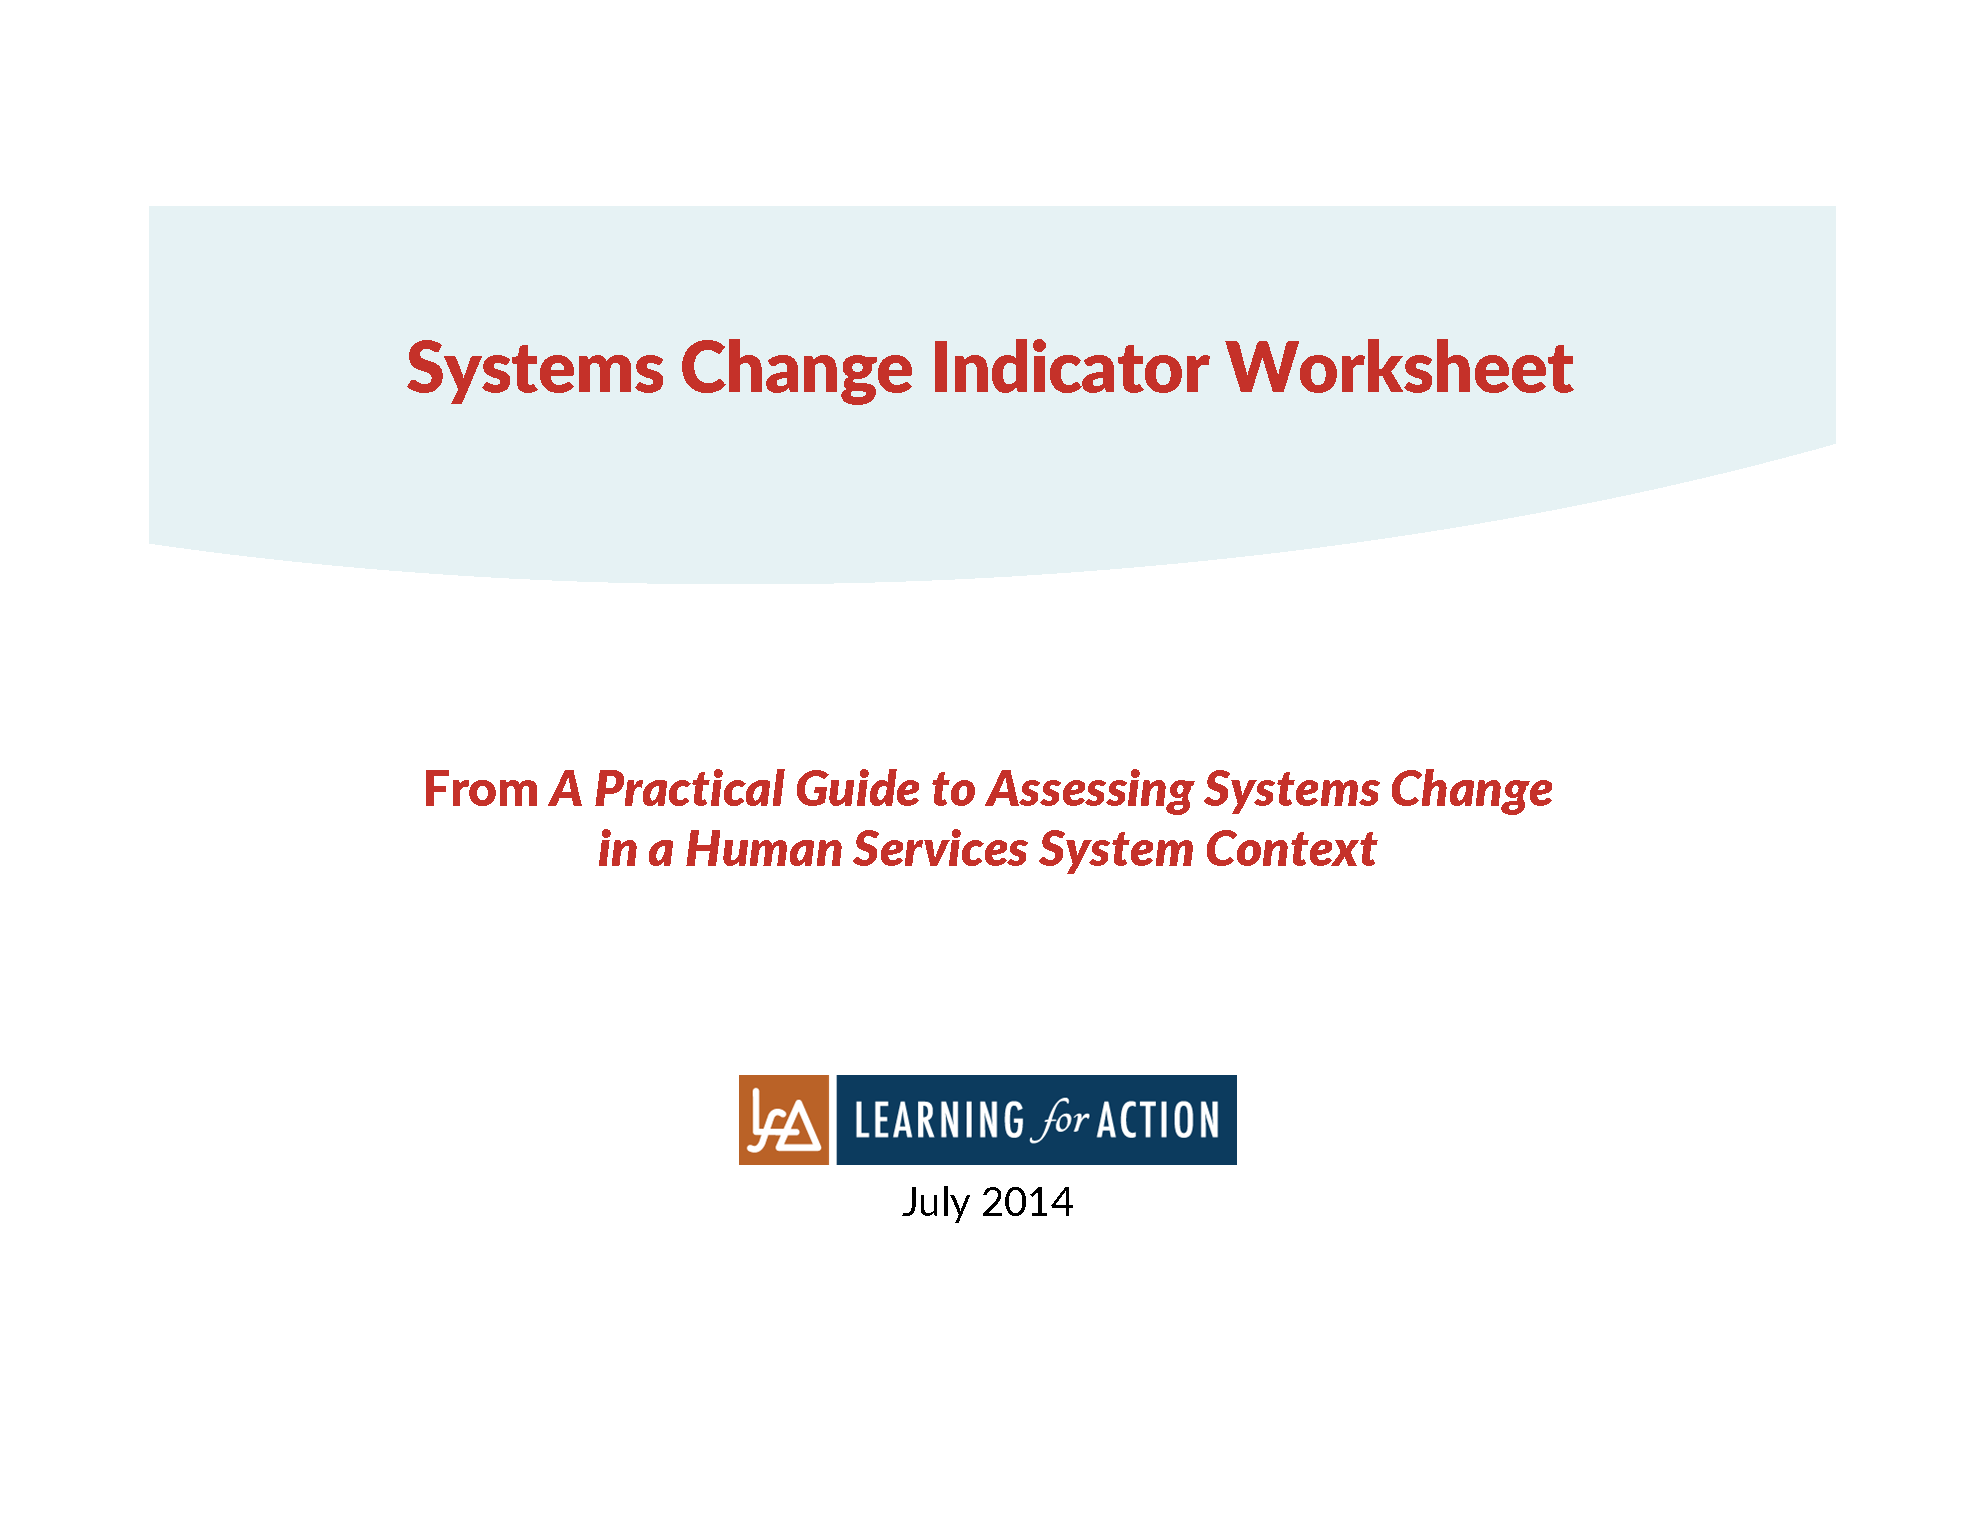 A Systems Change Indicator Worksheet